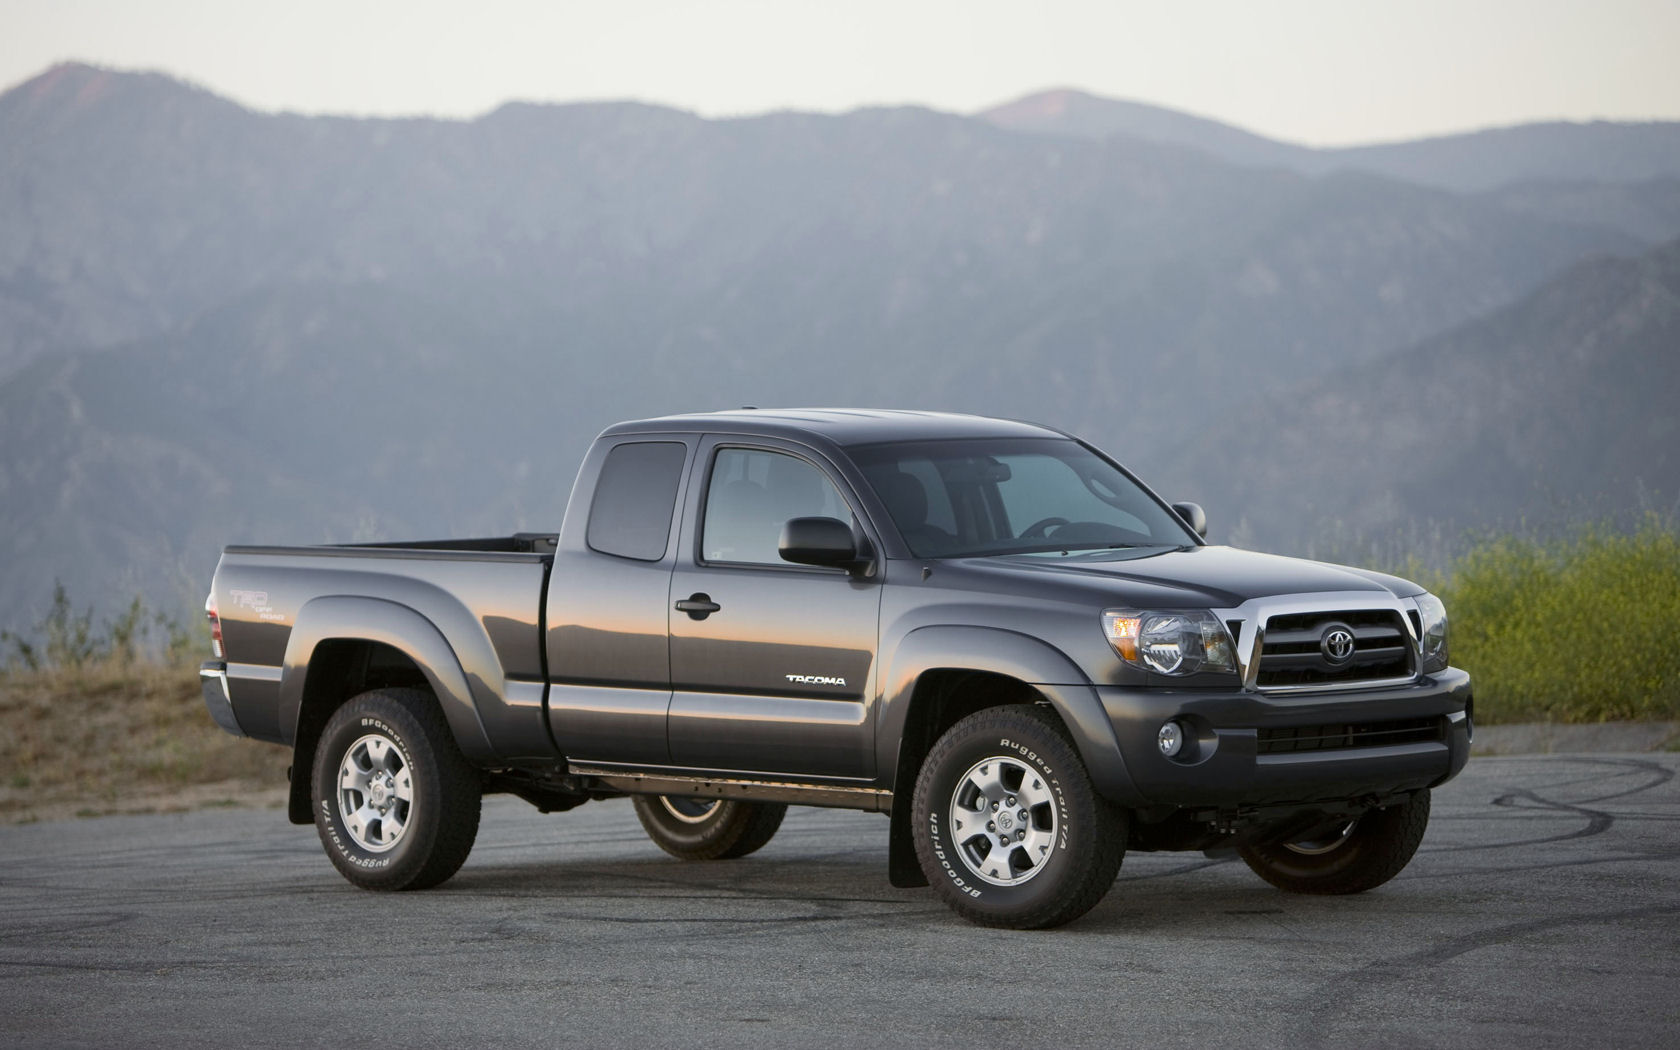 Tacoma Back Pages >> Toyota Tacoma, PreRunner, AWD, V6 - Free Widescreen ...